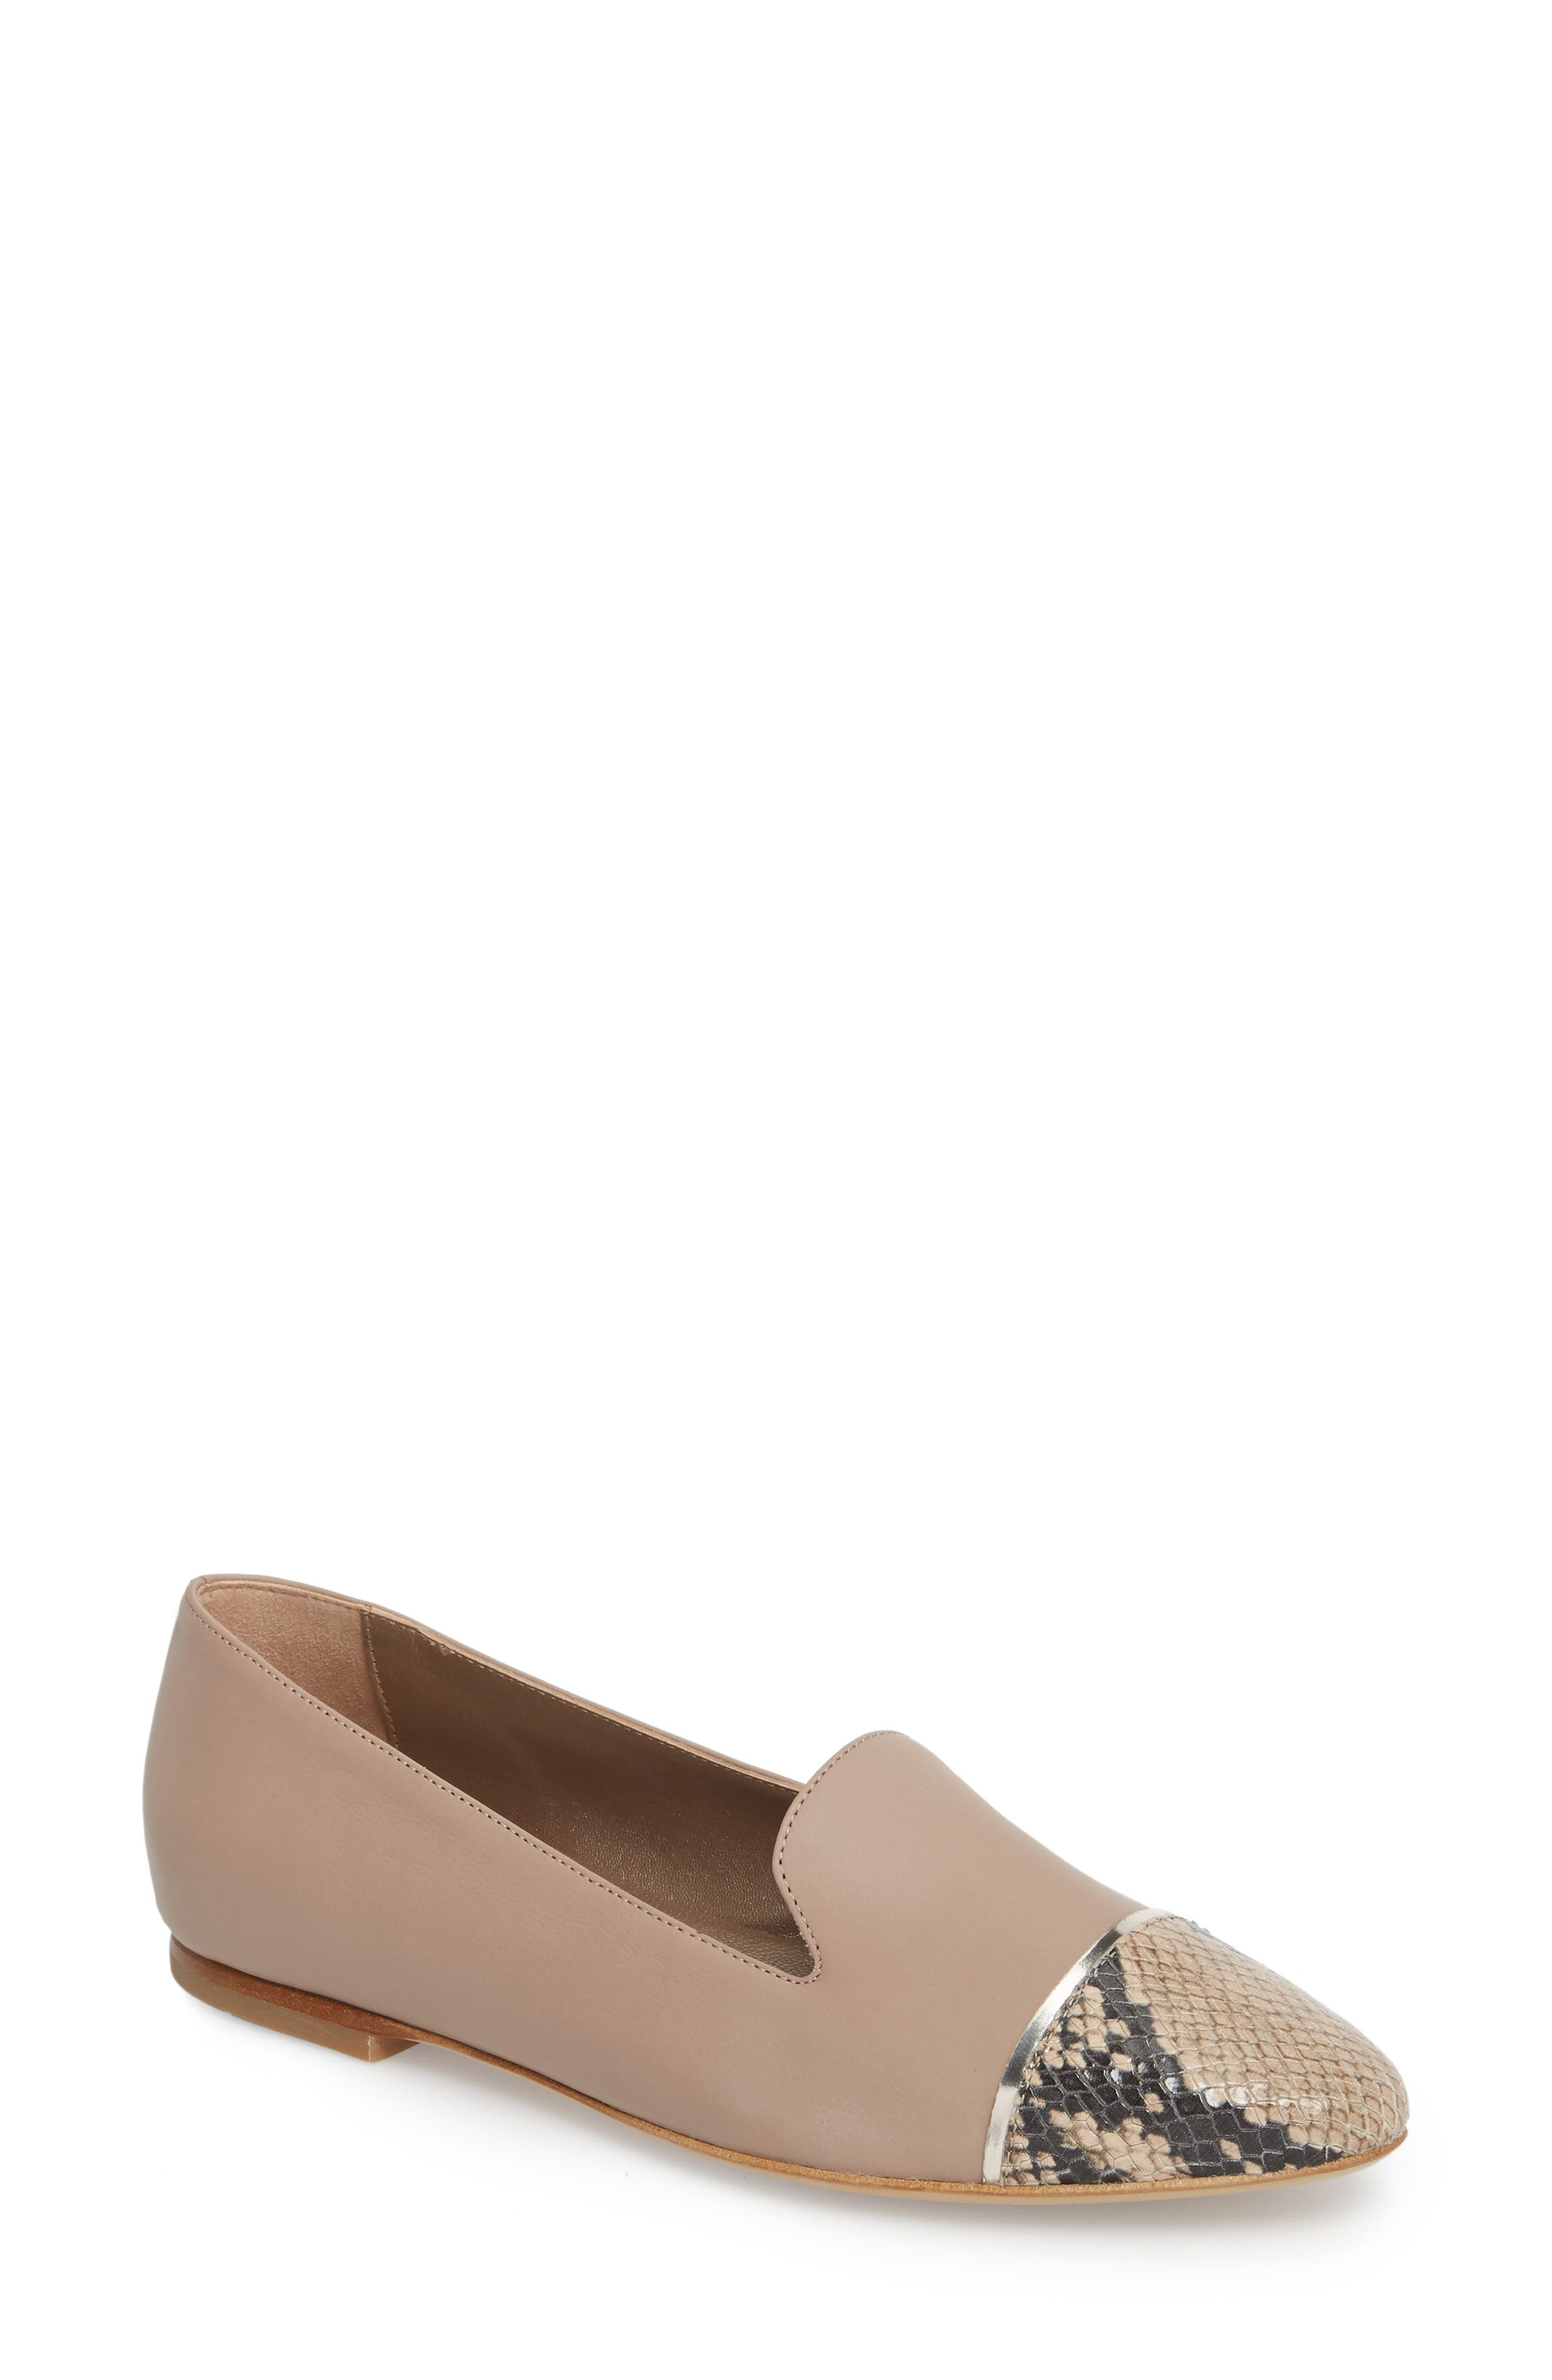 Cap Toe Loafer,                         Main,                         color, Marble Taupe Leather